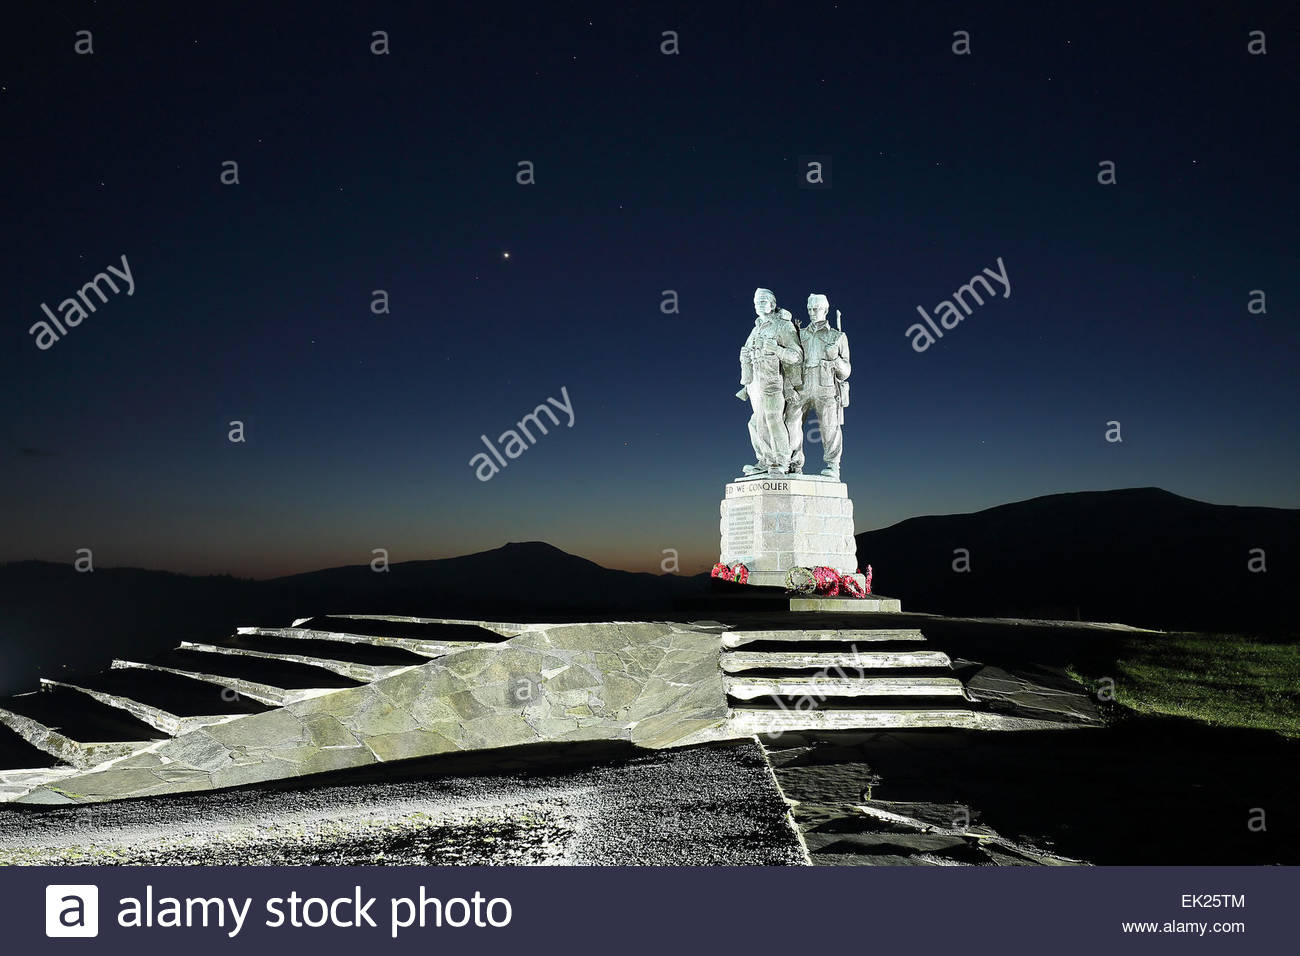 Evening twilight shot of the Commando memorial on a clear evening with a star filled sky - Stock Image